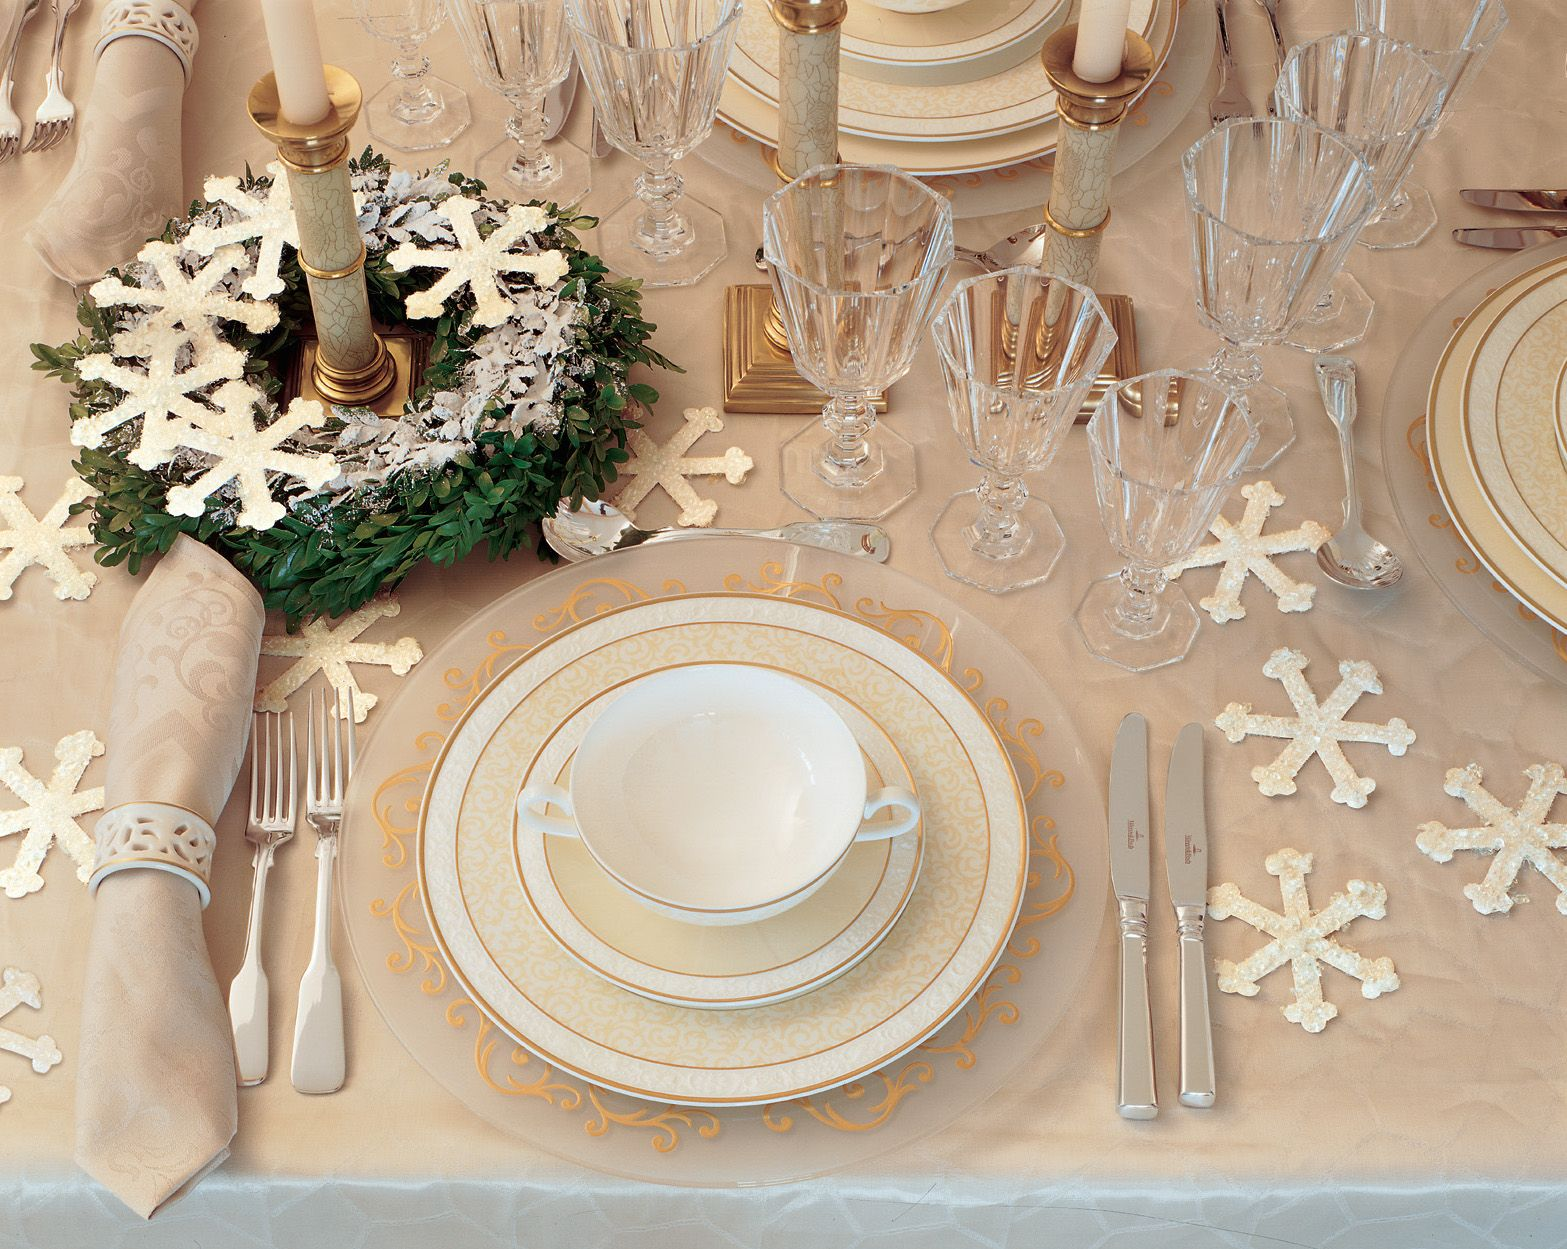 How to host a winter wedding with a holiday or christmas theme how to host a winter wedding with a holiday or christmas theme junglespirit Choice Image